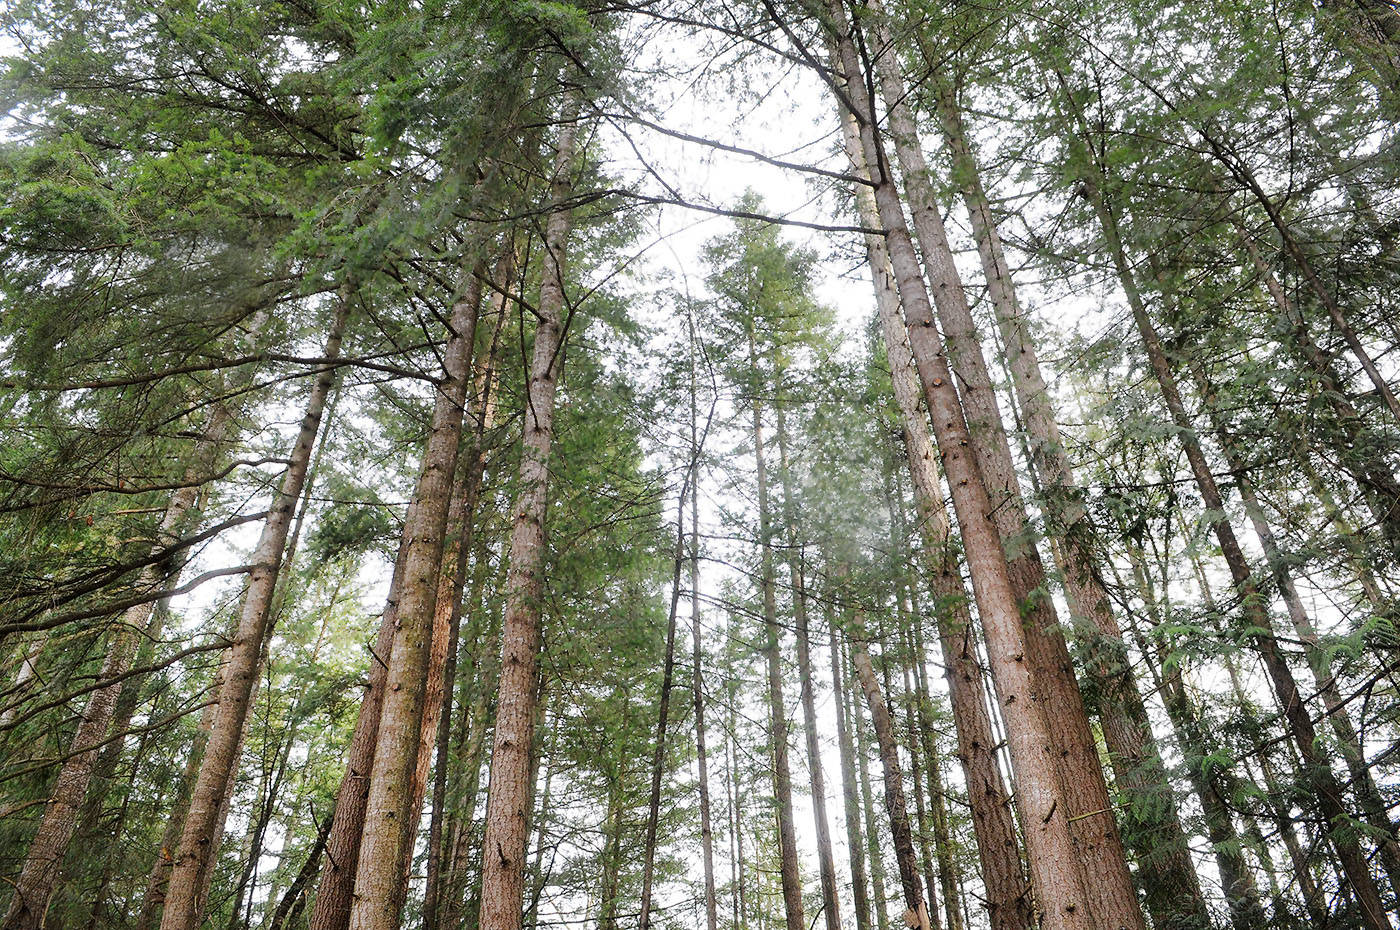 POLL: Tree protection bylaw for Langley Township?